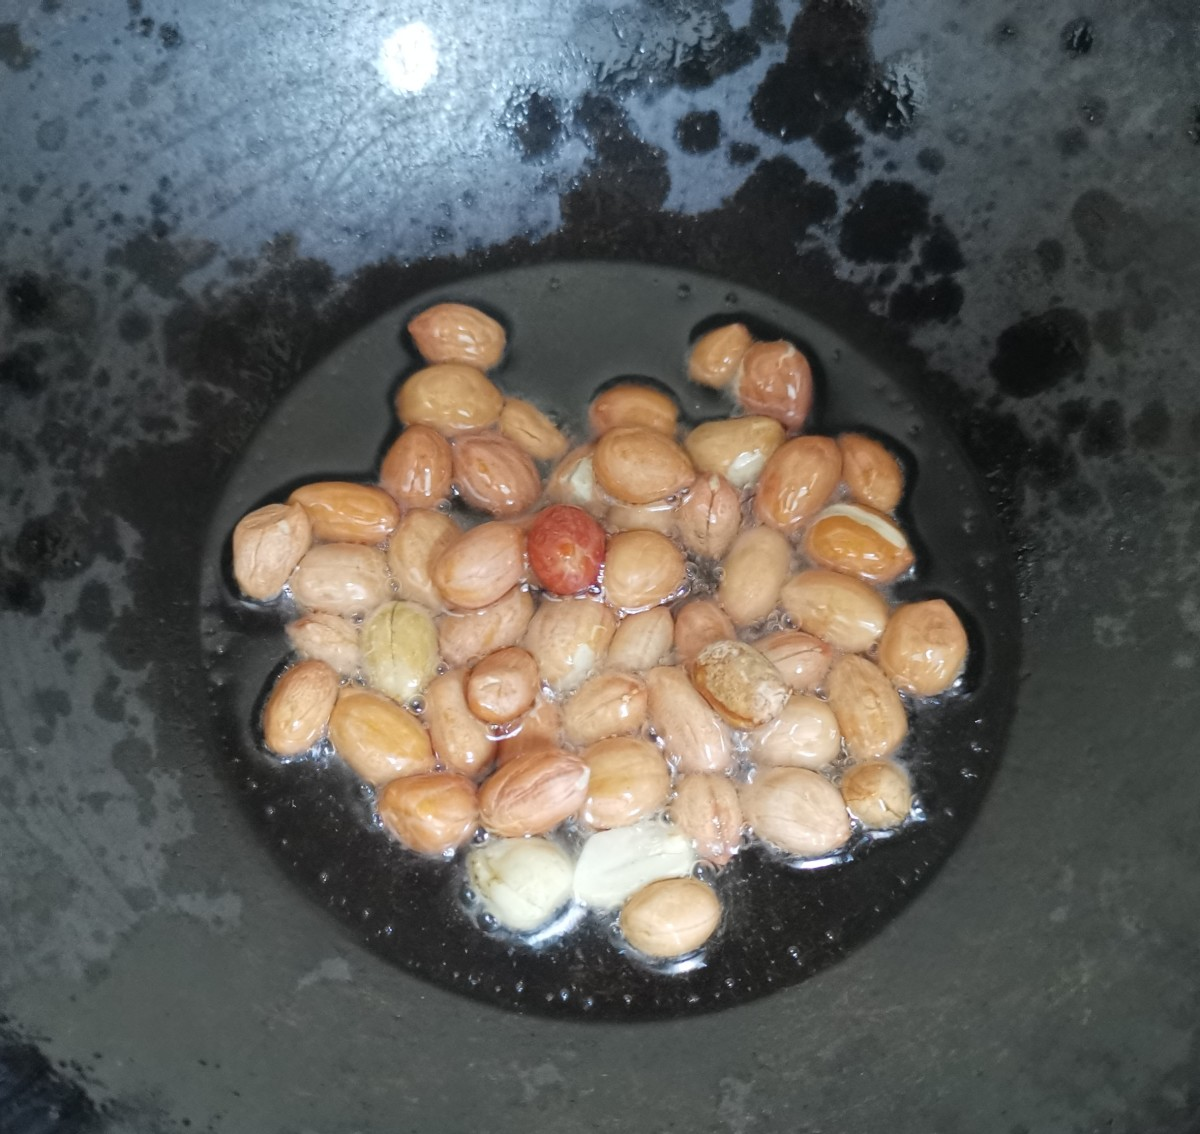 Add oil to a pan. Fry the peanuts till they become crunchy. Set aside.